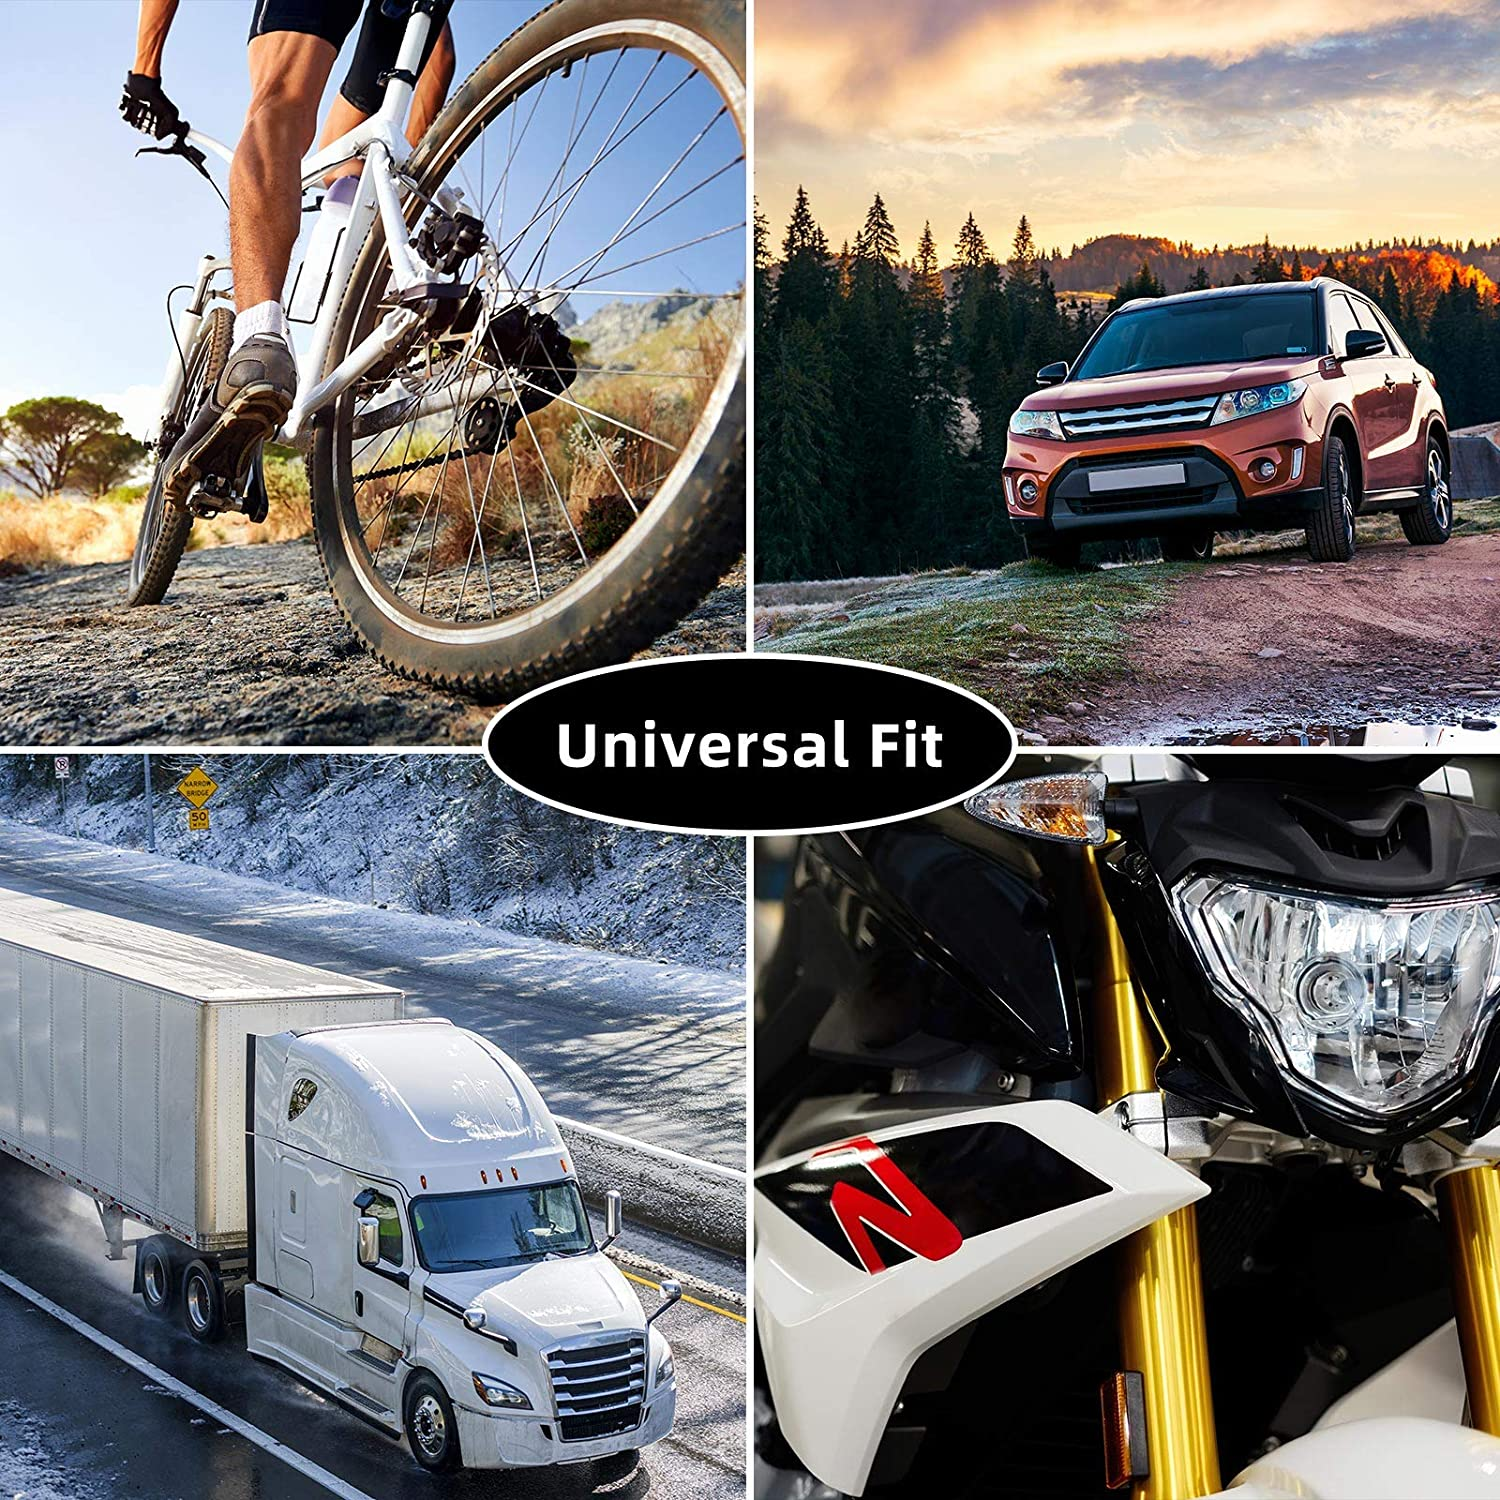 Motorcycles 50 PCS SUVs for Cars Bike and Bicycle Tire Valve Caps Universal Stem Covers Trucks